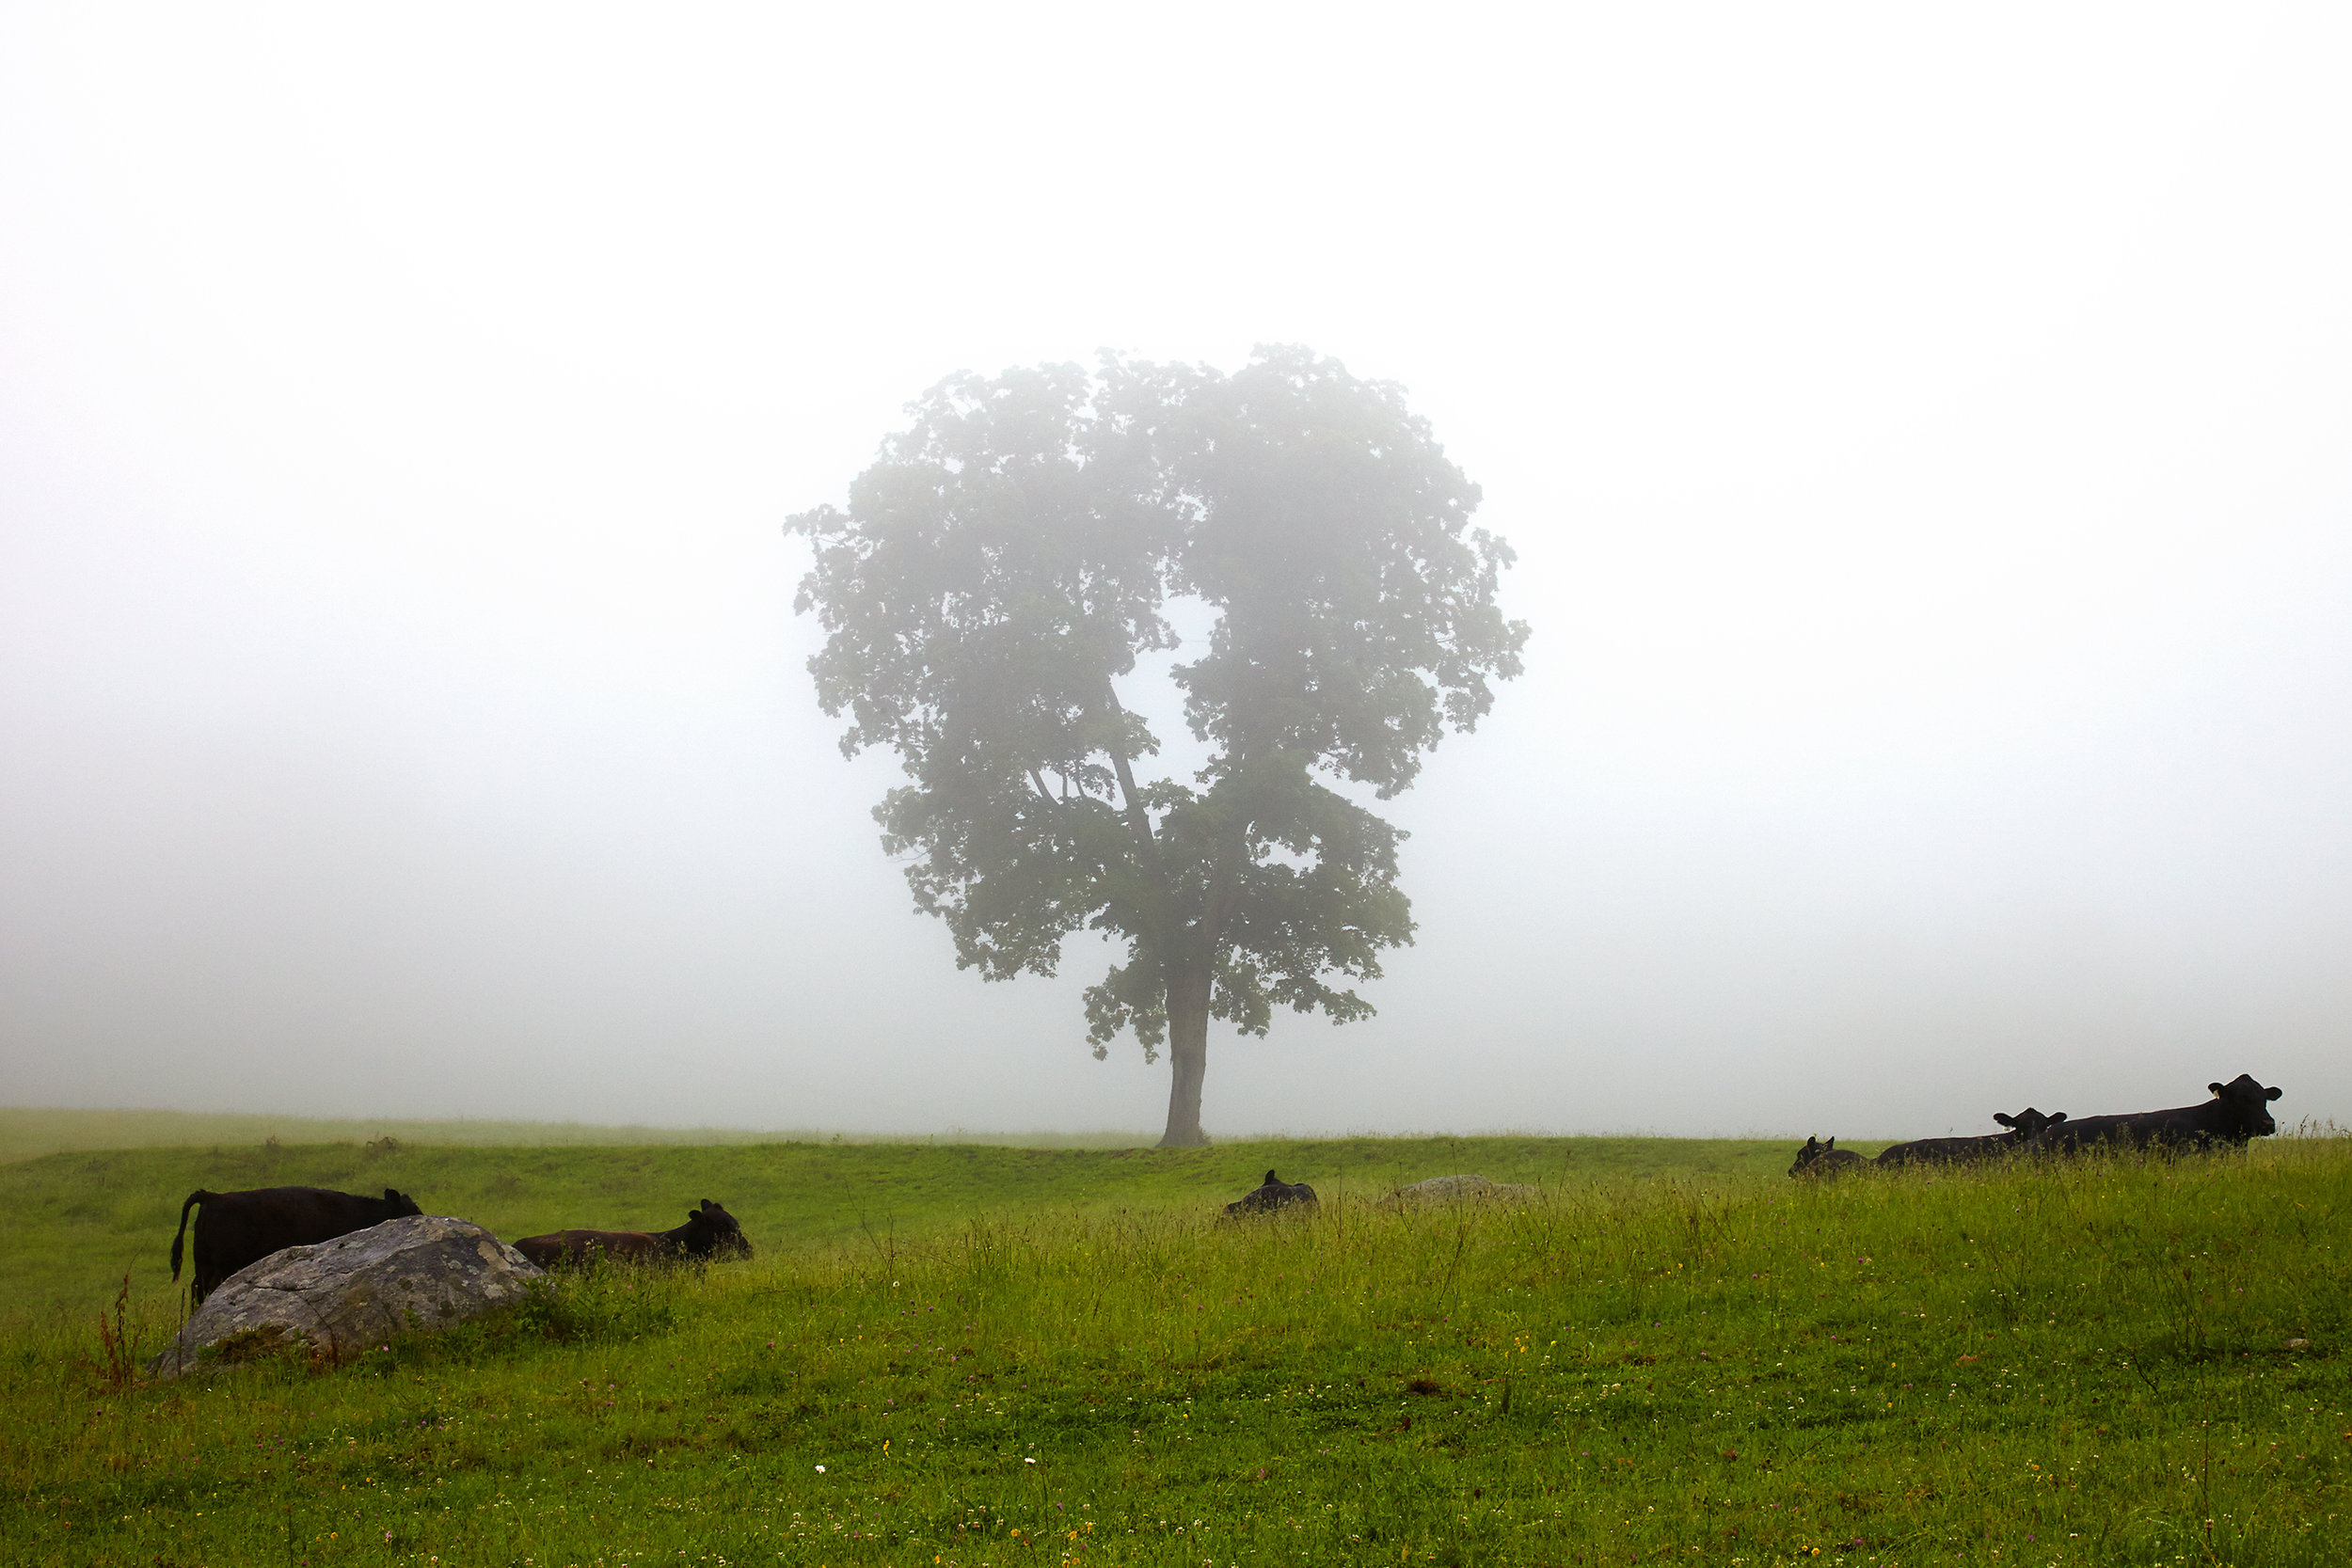 COW-IN-FOGGY-FIELD-02-WITH-TREE-FARM-LANDSCAPE-BY-JONATHAN-R.-BECKERMAN-PHOTOGRAPHY-NEW-MILFORD-CONNECTICUT.jpg